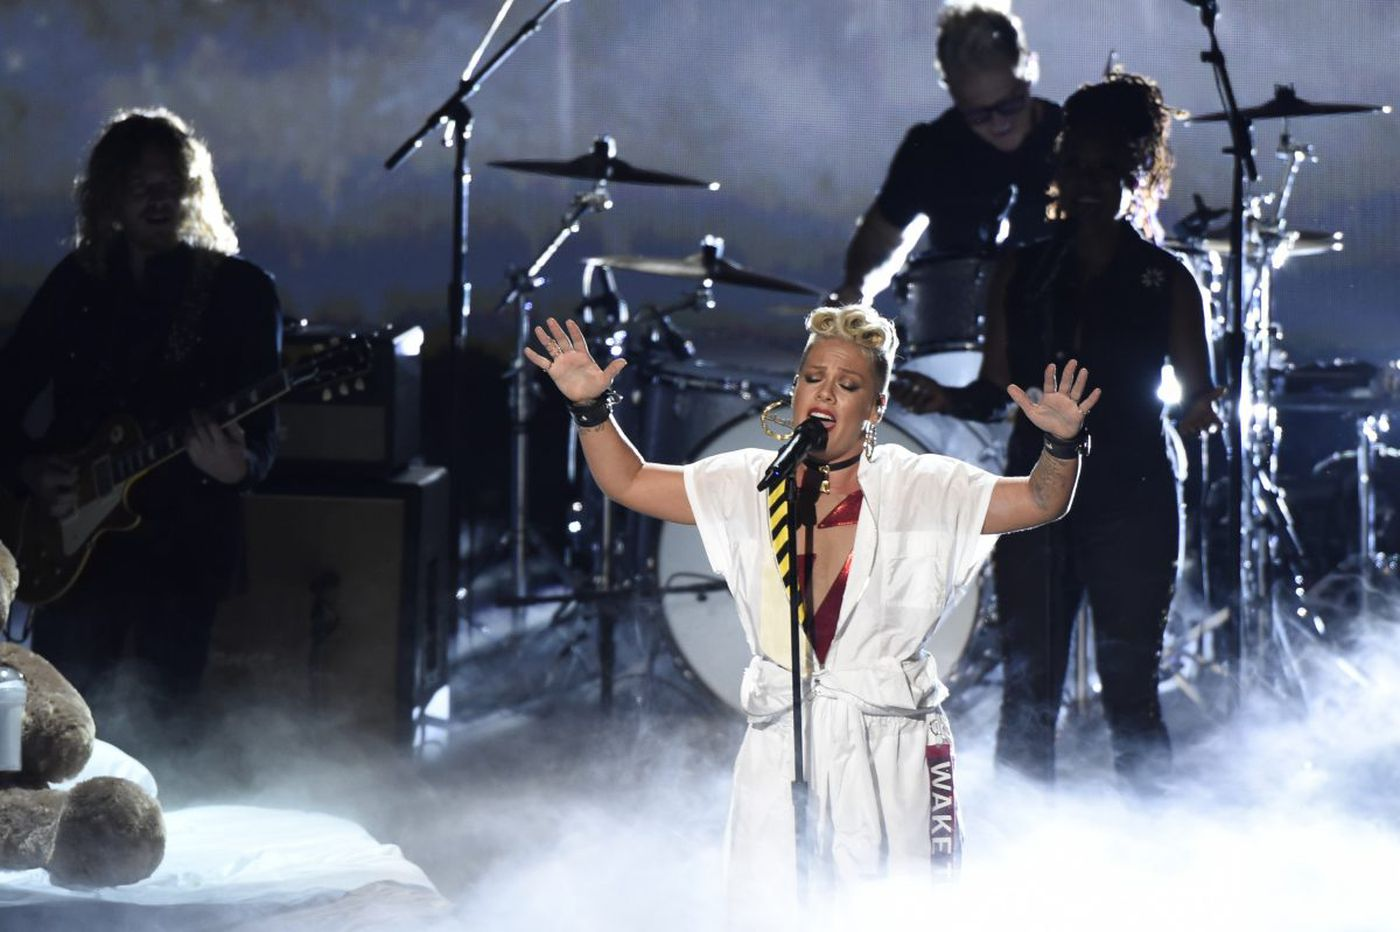 Doylestown's Pink to bring 'Beautiful Trauma' tour to Philly in 2018